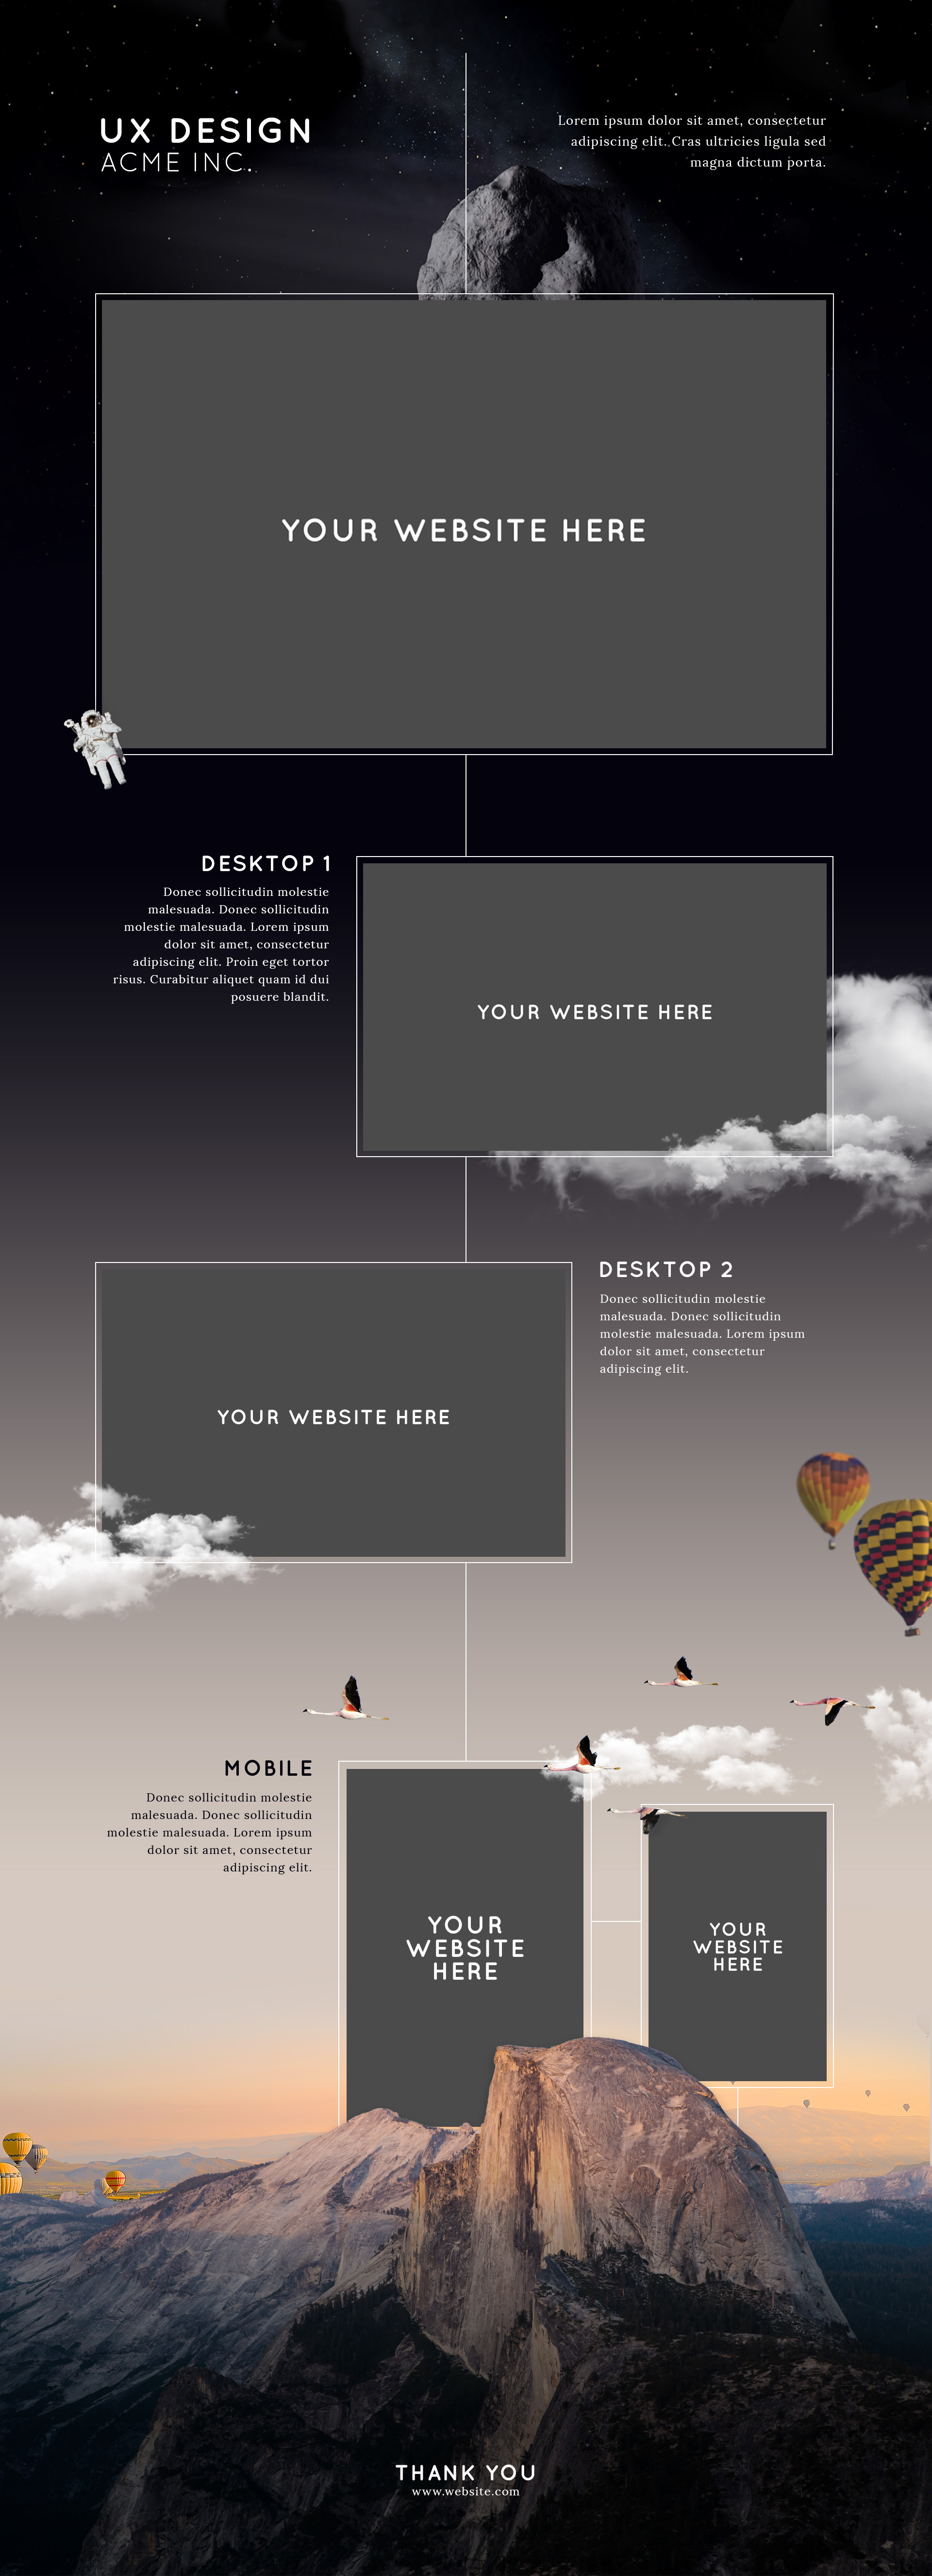 vertical website presentation mockup free download on behance